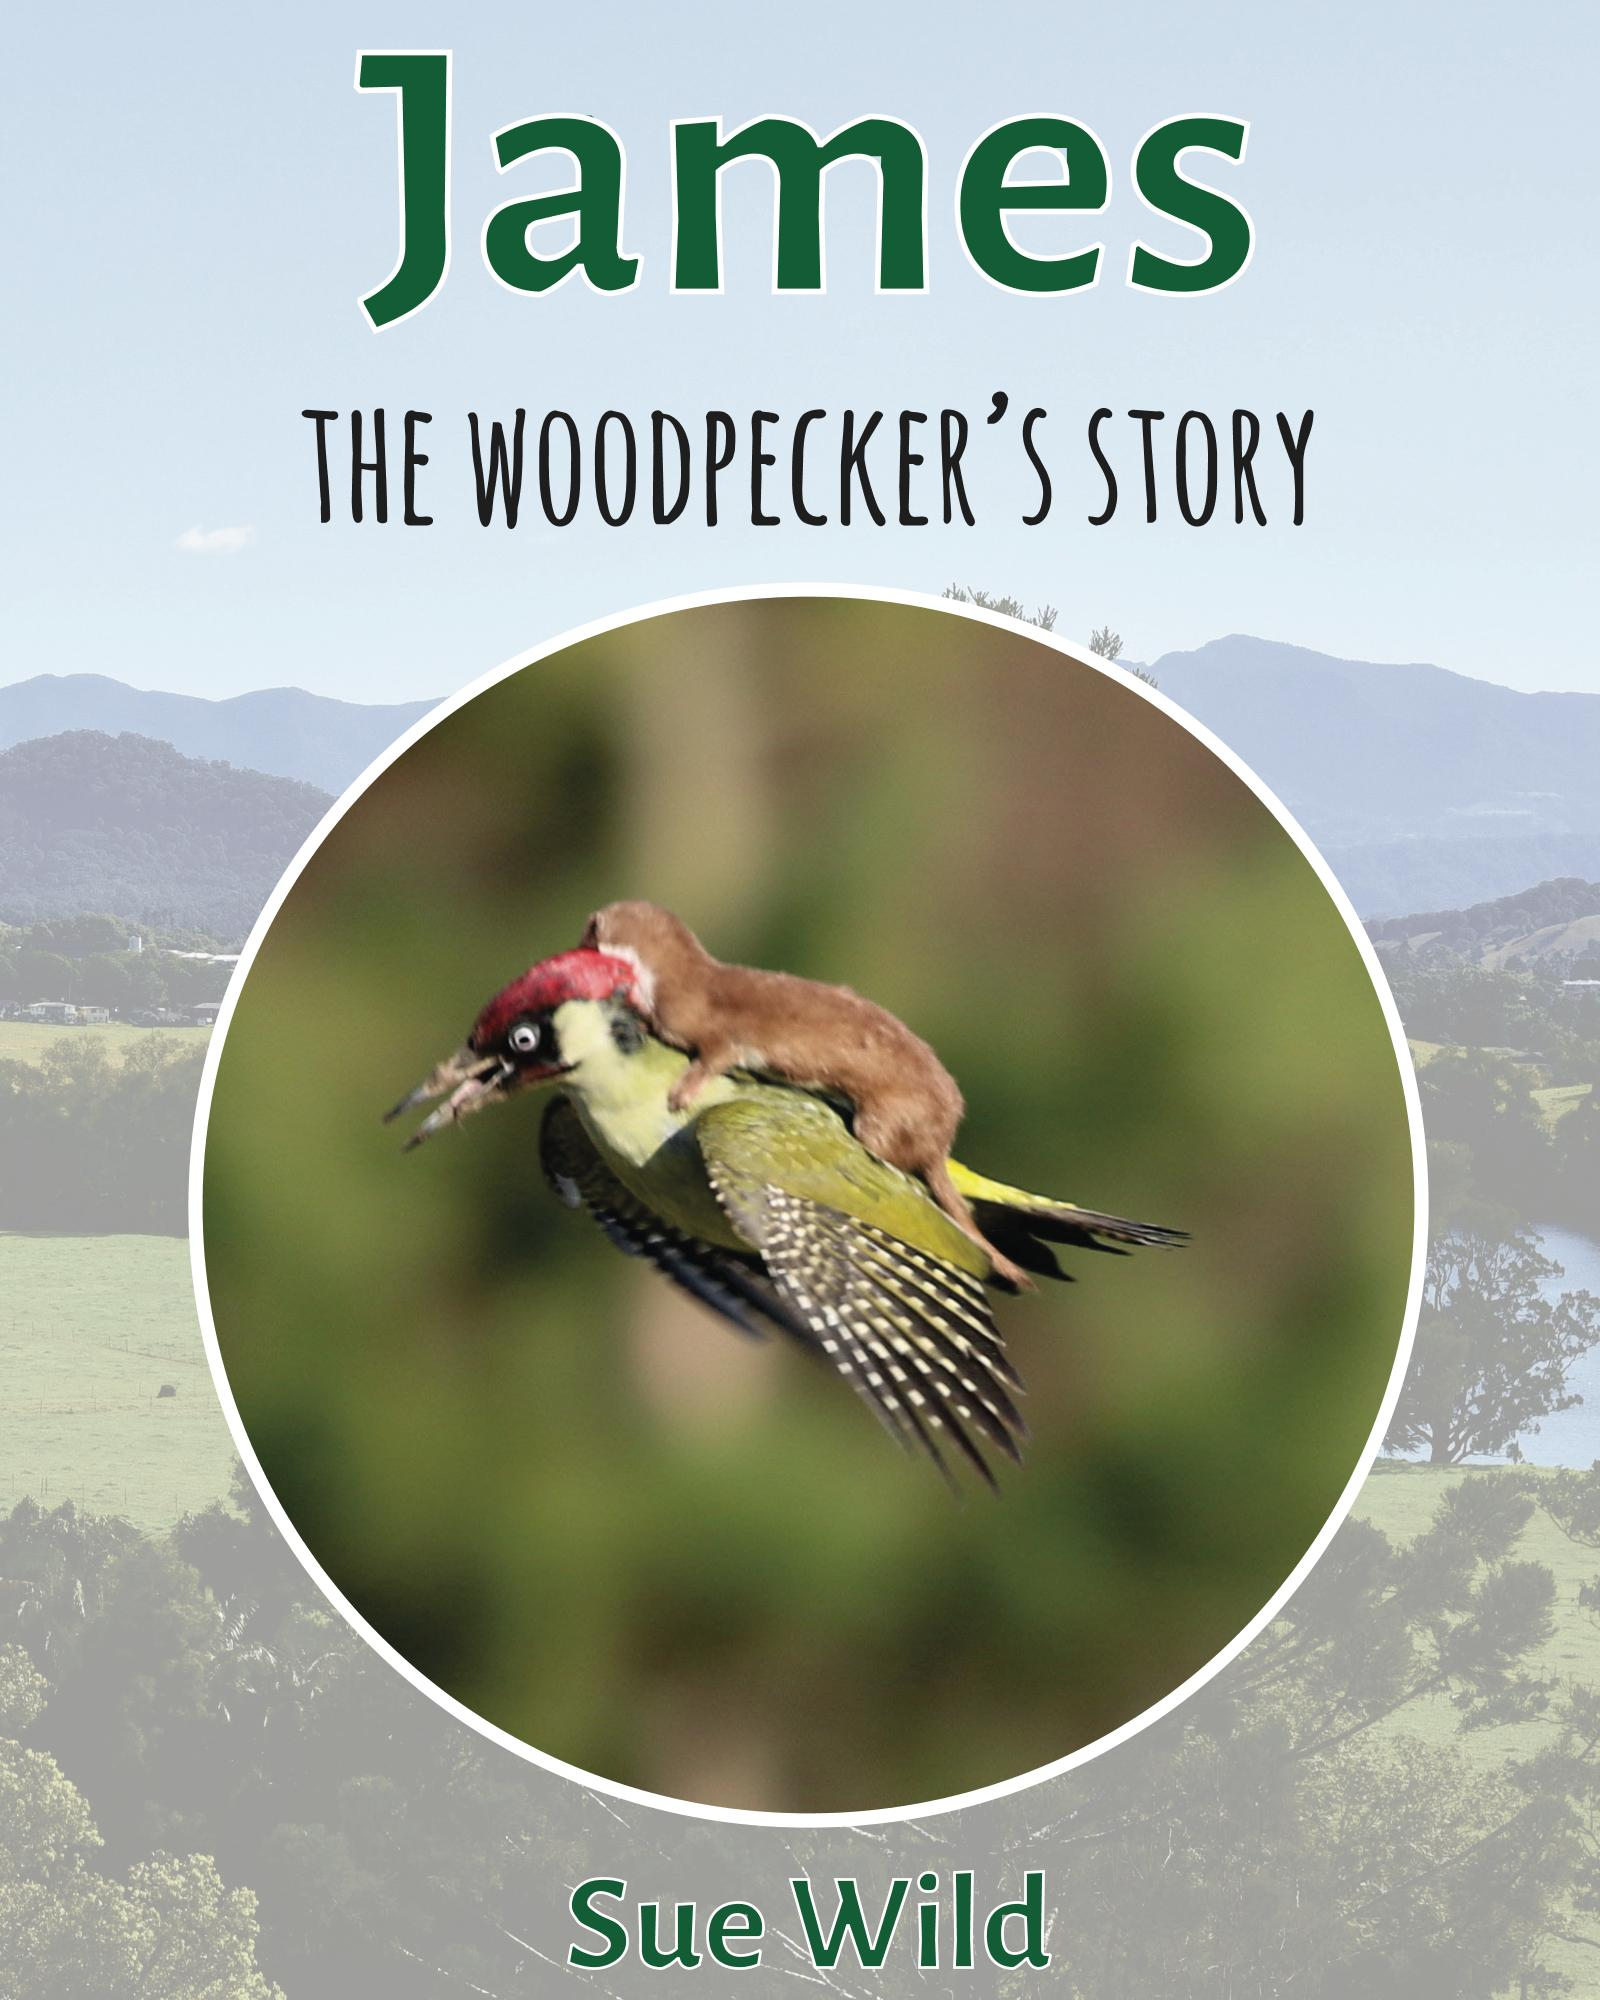 James the woodpecker story image Martin Le May